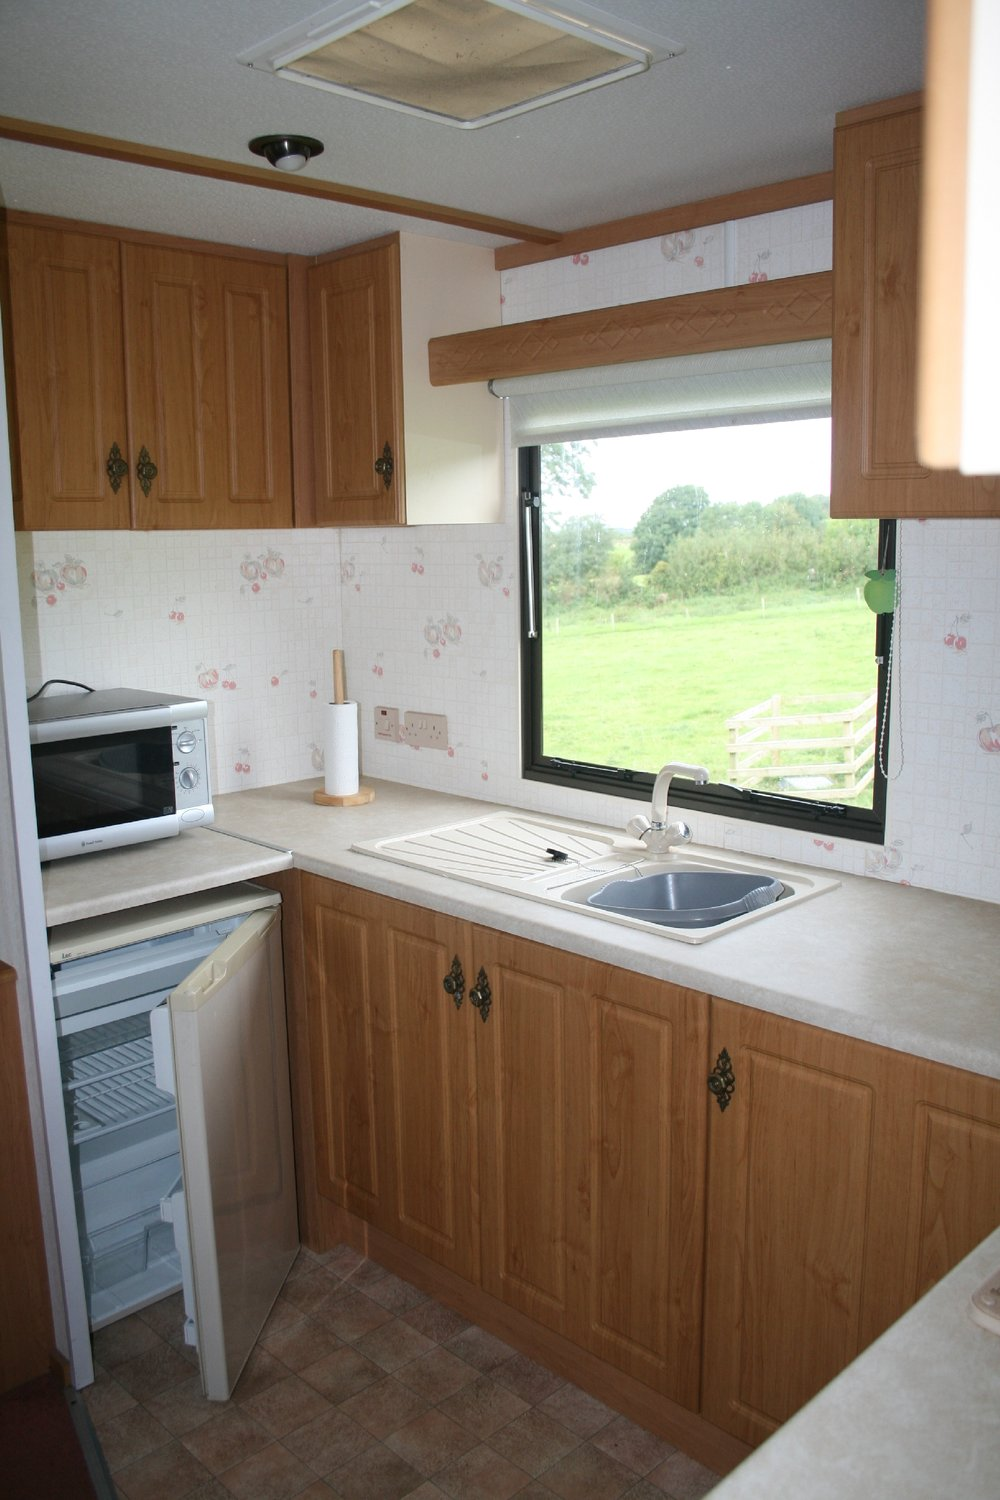 Kitchen - Caravan 2